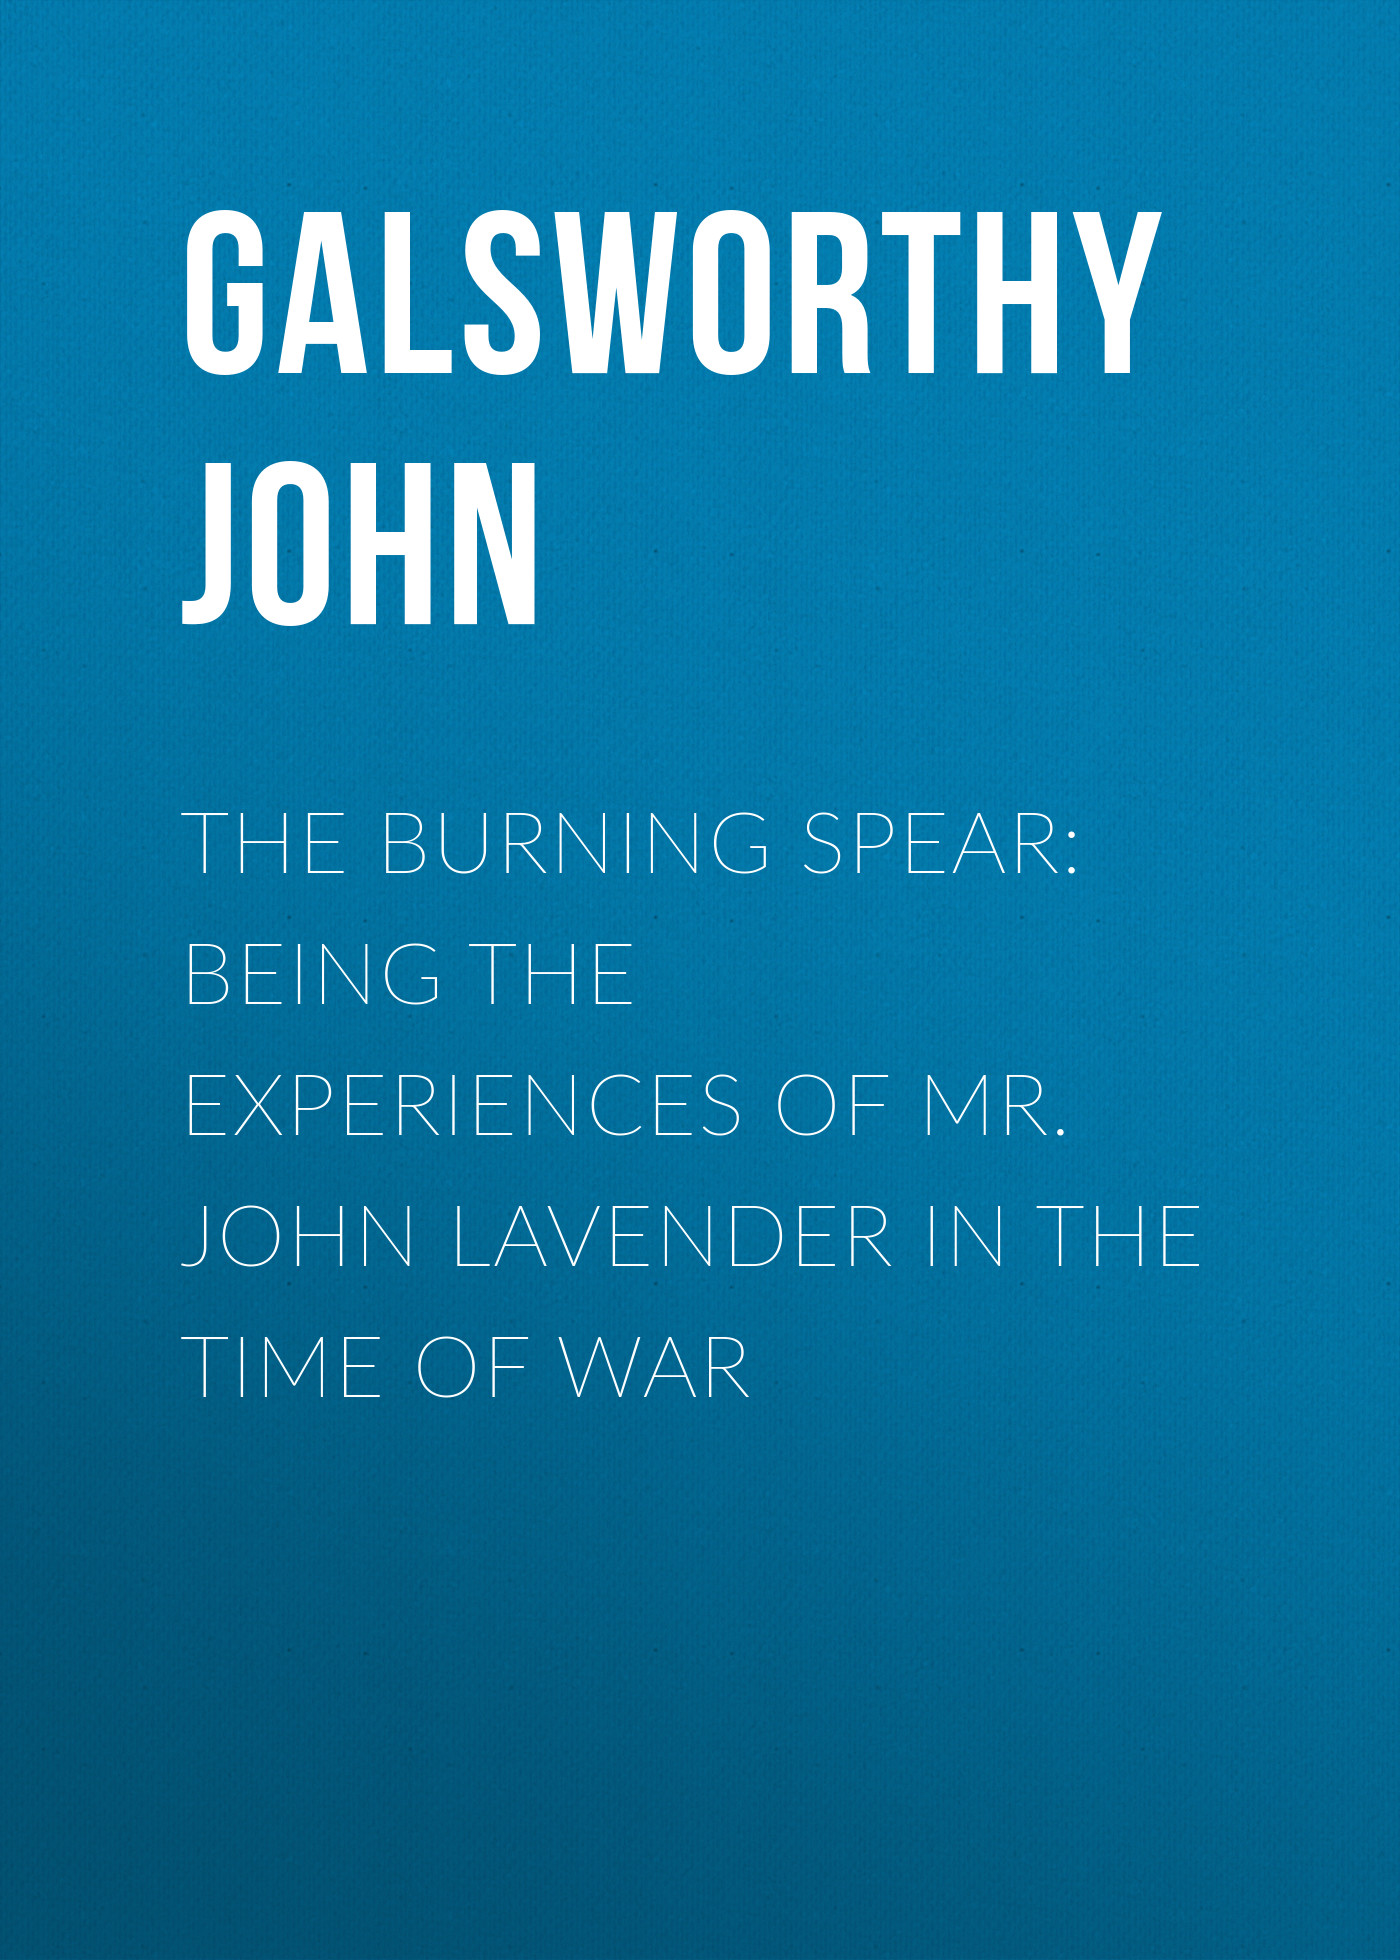 Galsworthy John The Burning Spear: Being the Experiences of Mr. John Lavender in the Time of War john galsworthy the burning spear